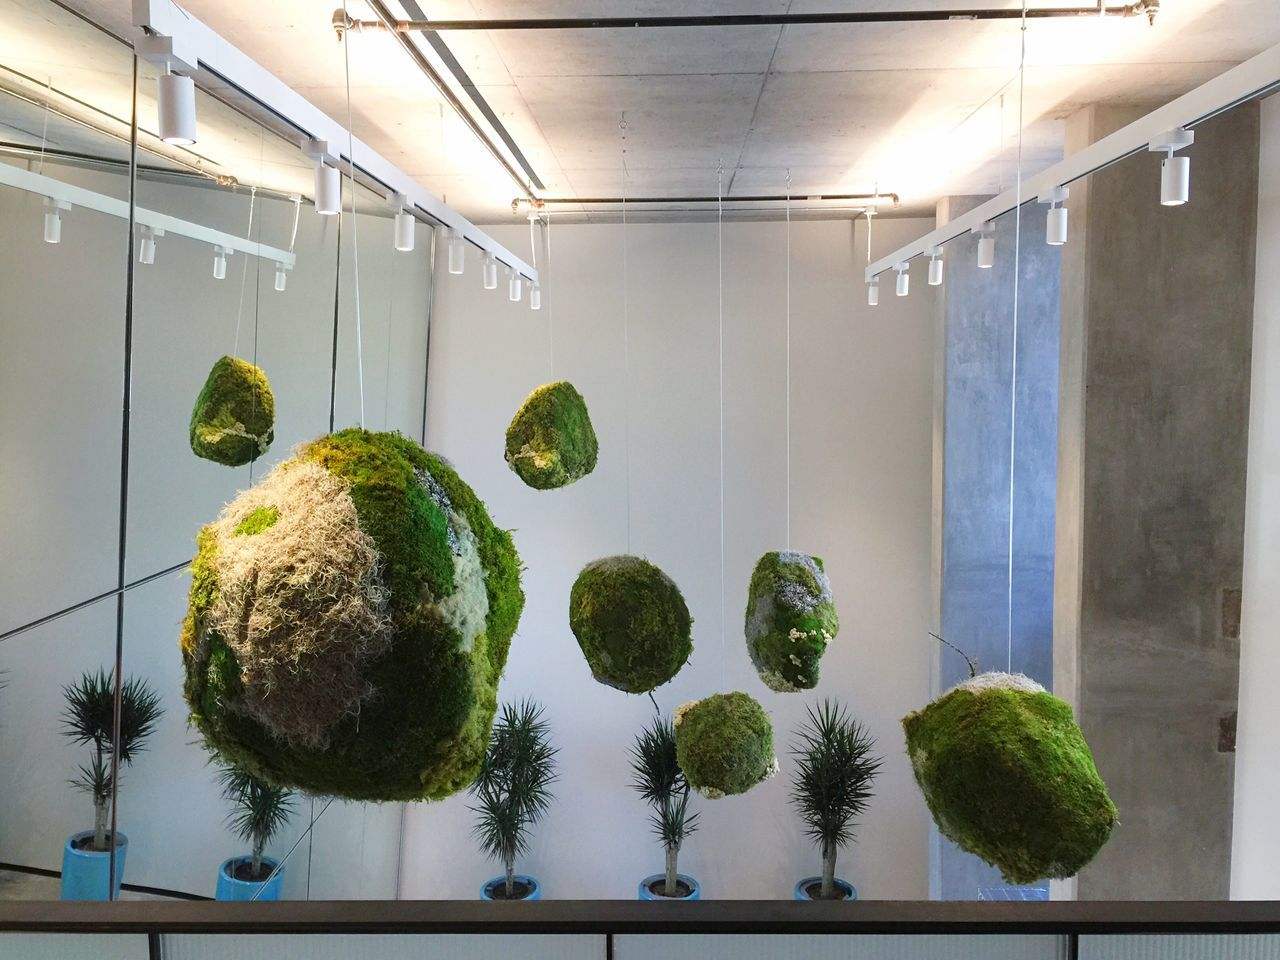 Fifteen weeks ago I got a COMMISSION to Create Hanging Moss Sculpture for Dropbox, and today at last I saw them installed! Moss Balls Organic Moss Balls Reception Room